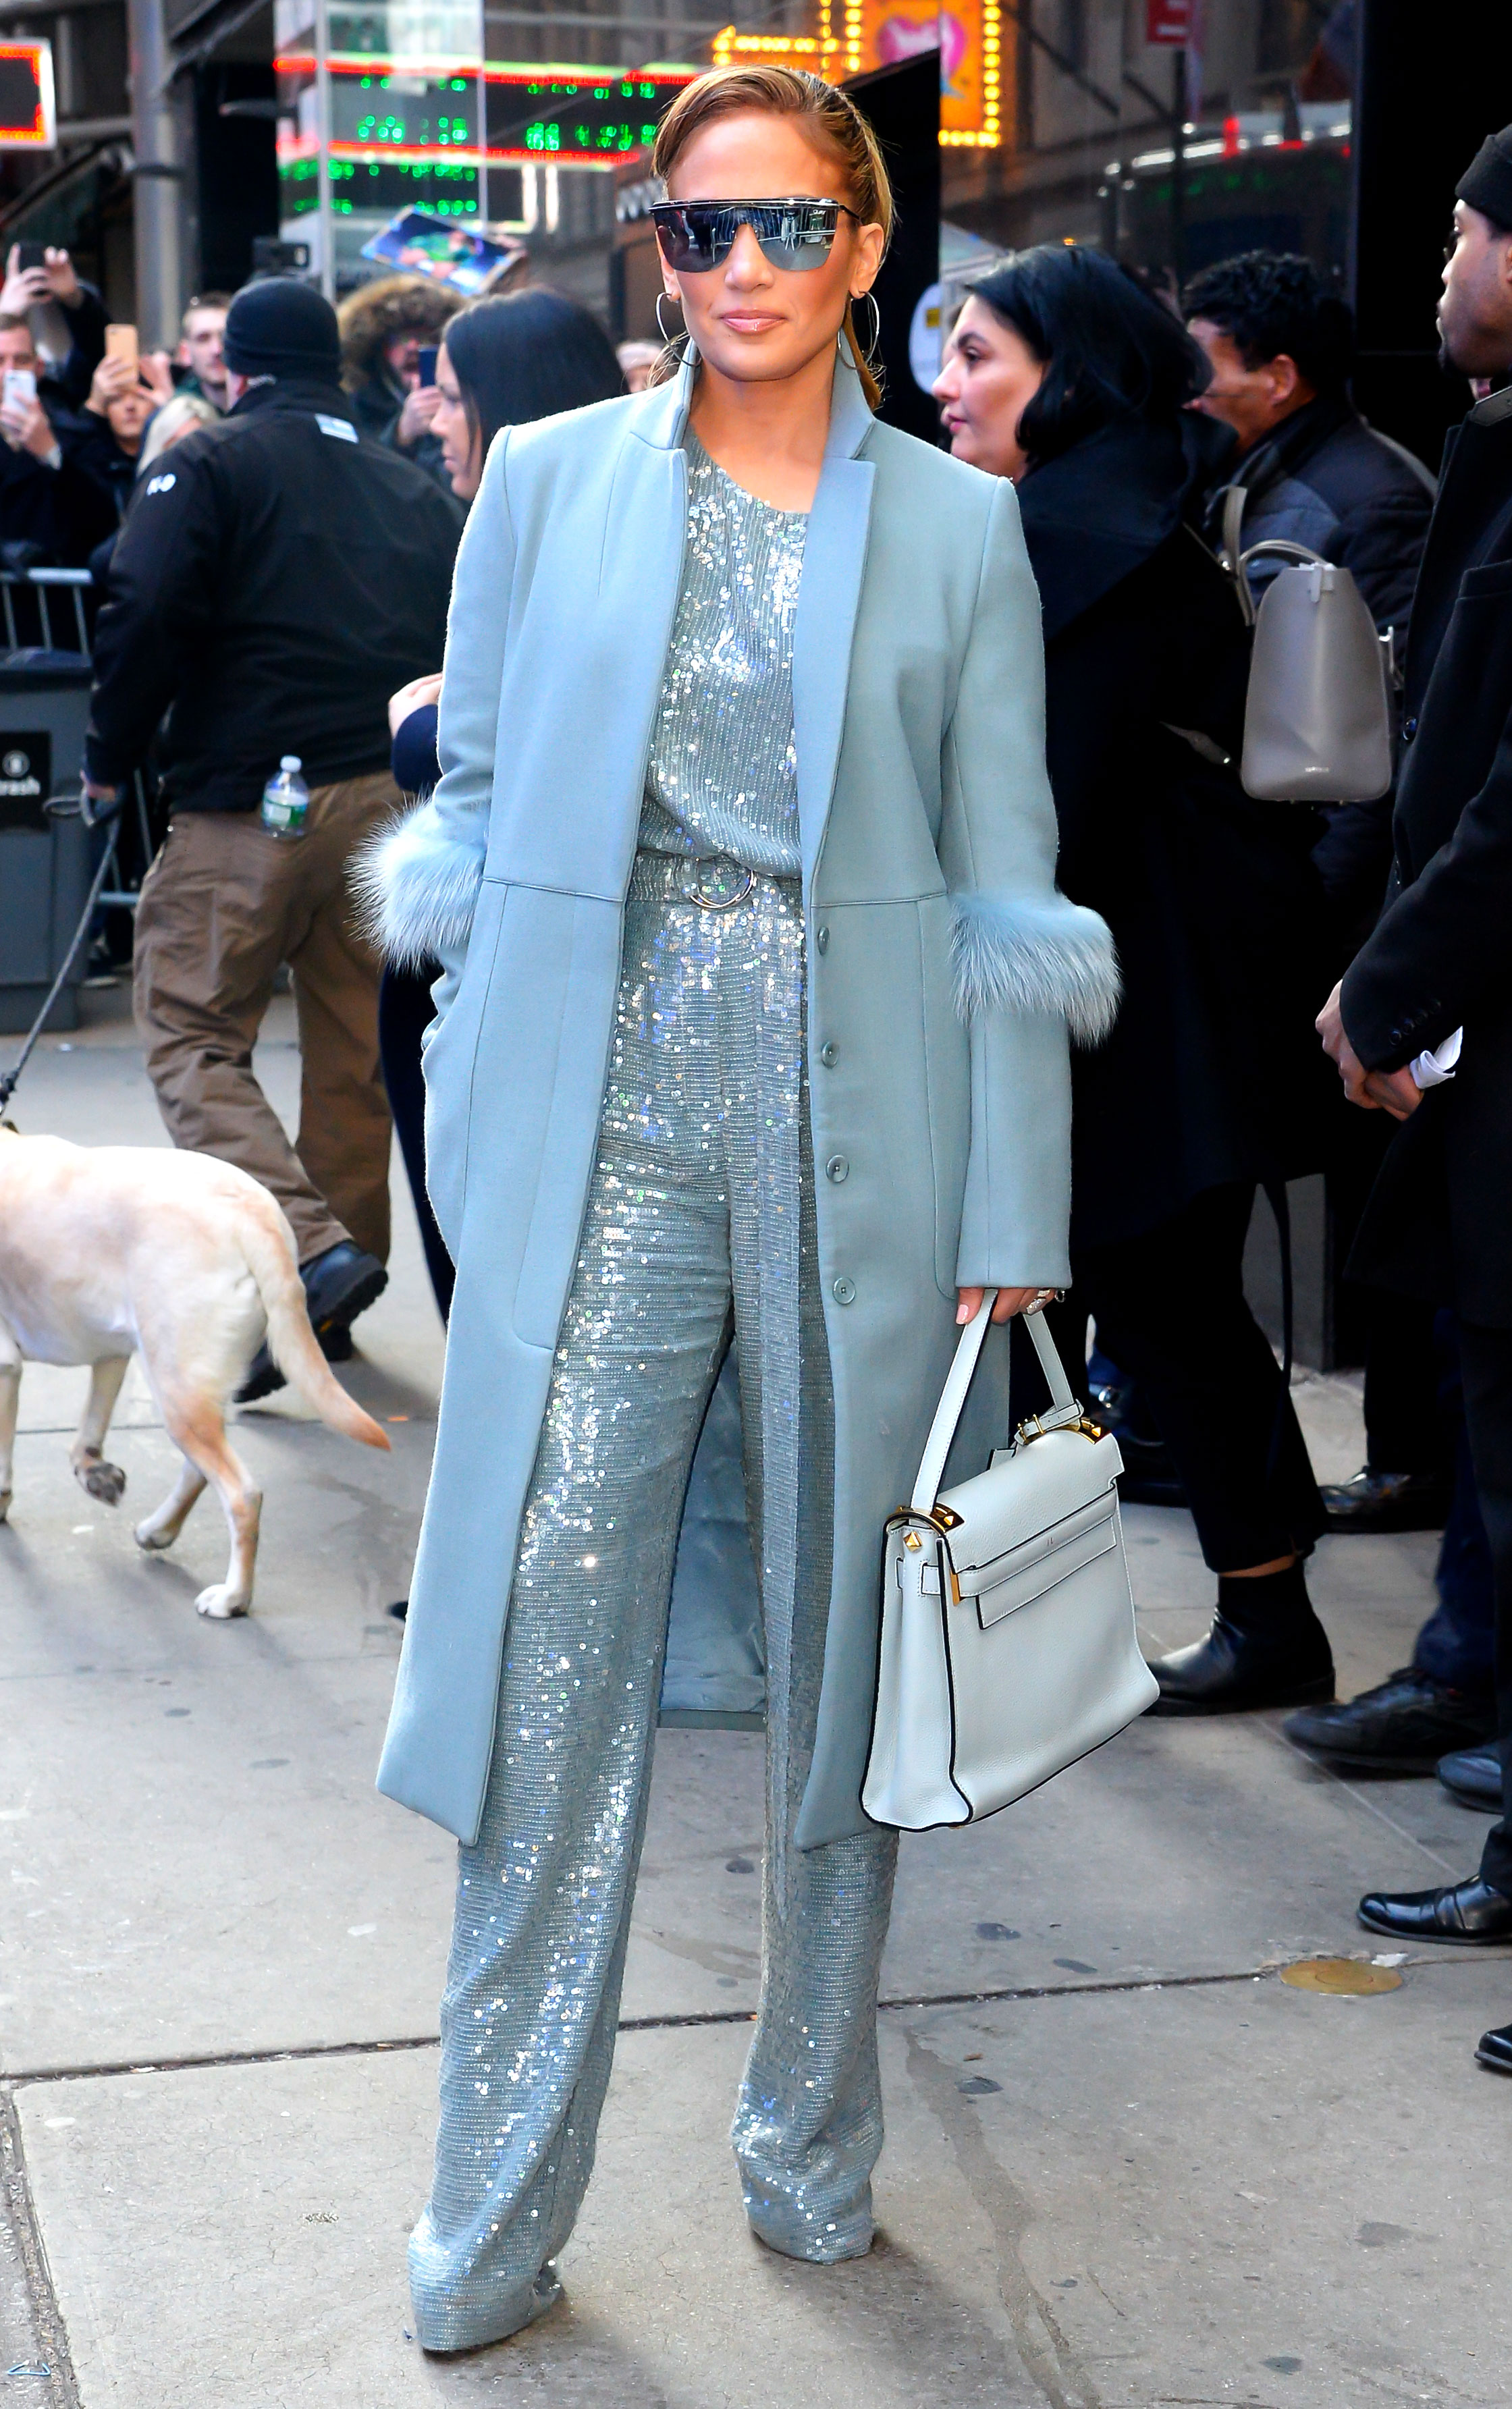 jennifer-lopez-Second-Act-press-sequin-jumpsuit-blue-coat - J. Lo brought some sparkle to Times Square for her appearance on Good Morning America on Wednesday, December 12, in a sequined Sally LaPointe two piece and fur-trimmed coat, metallic Jimmy Choo heels, a Valentino handbag and For Art's Sake sunglasses.